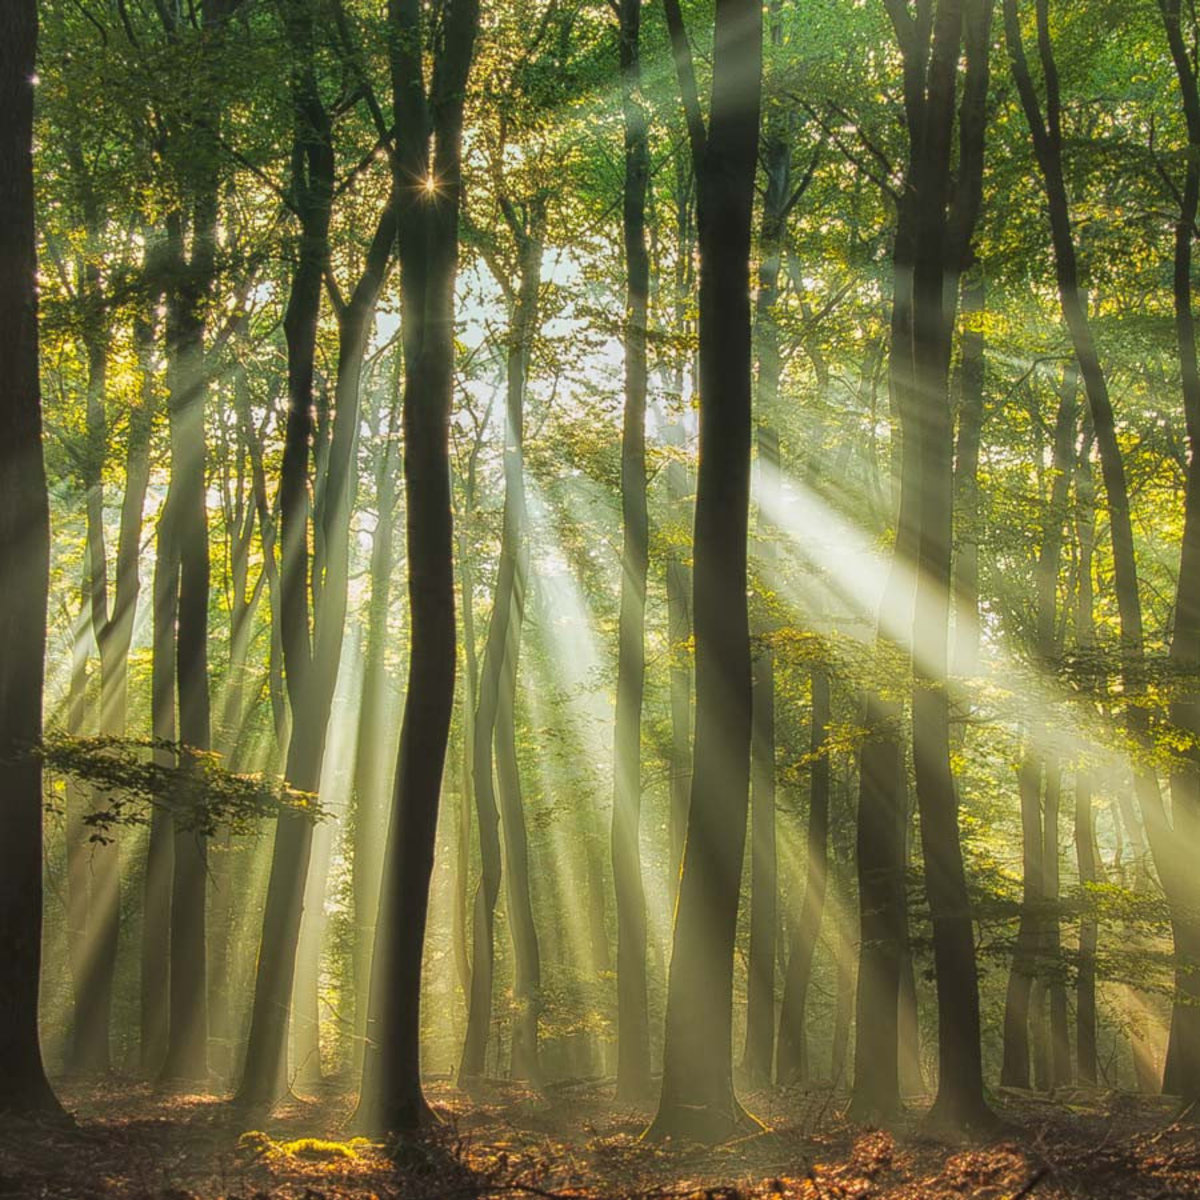 Sunrise shinning through thick green forest